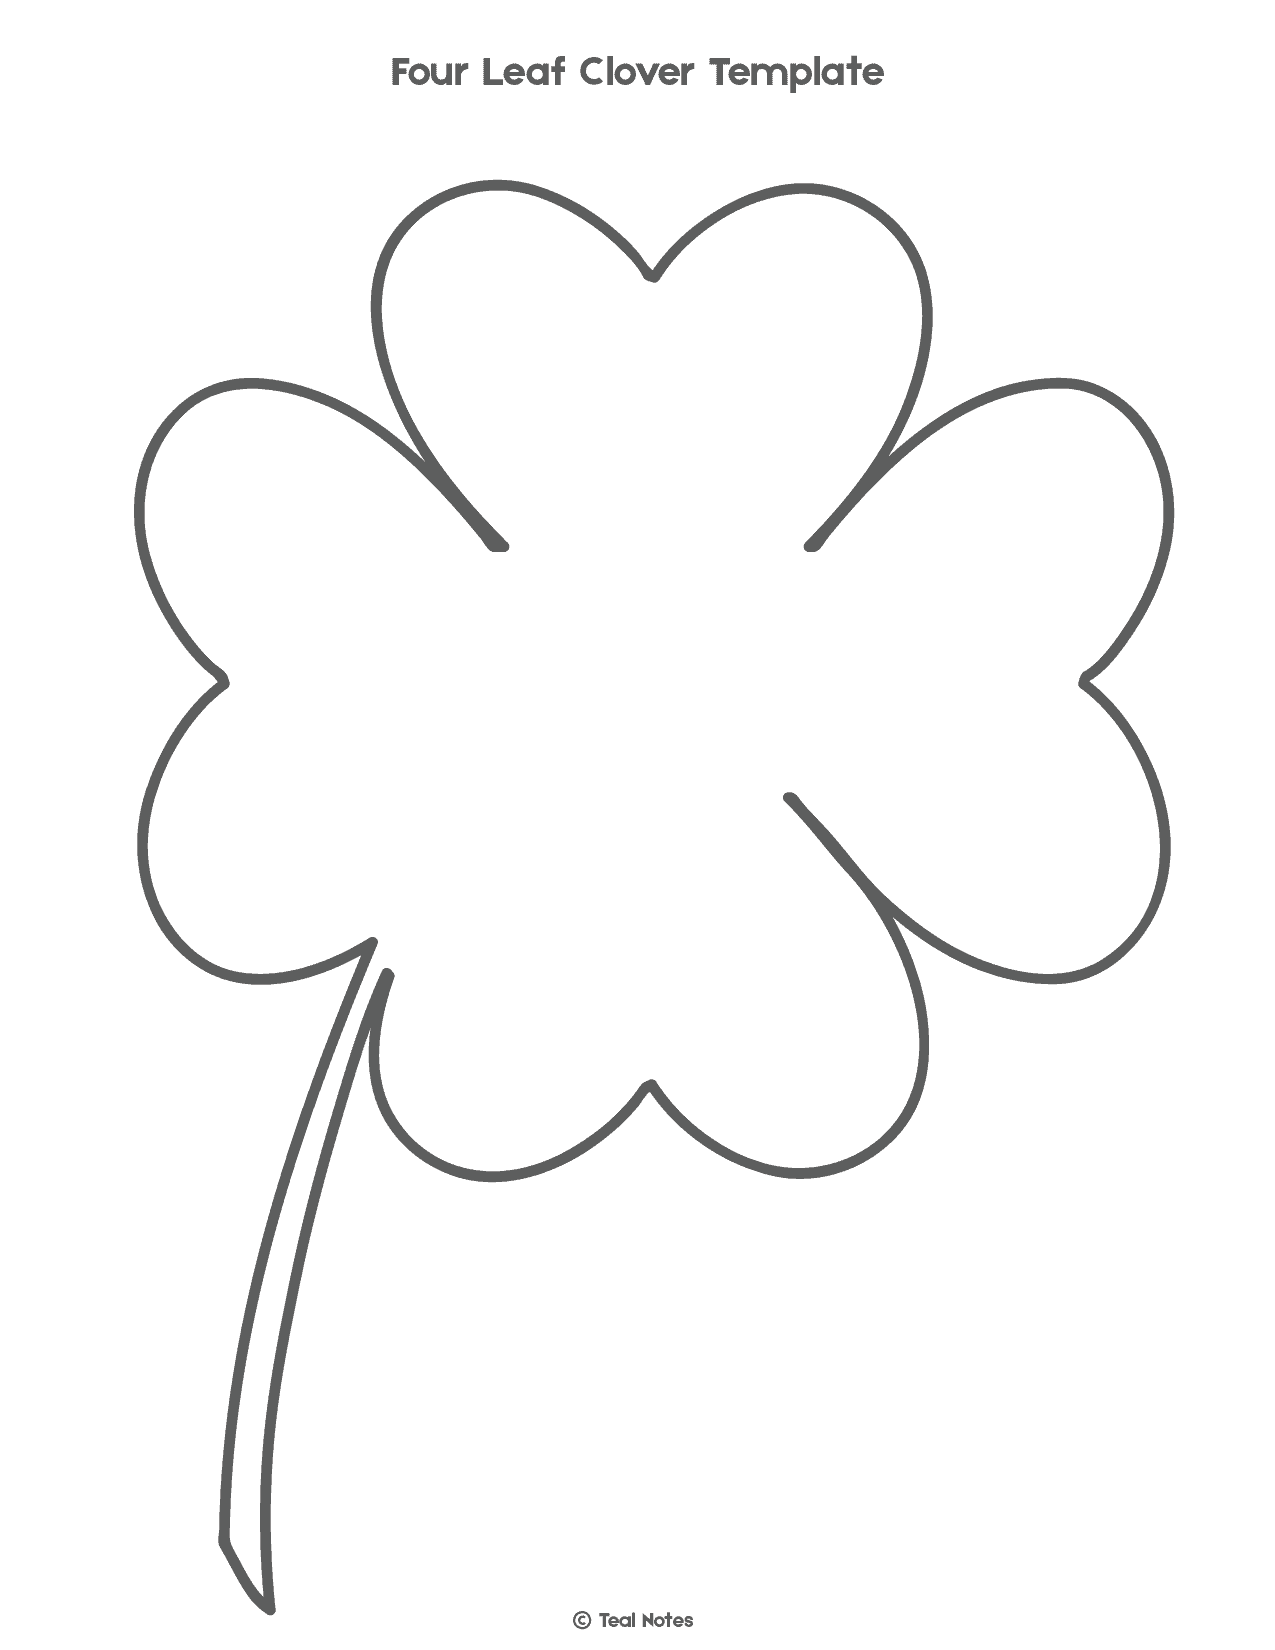 photo about Printable Four Leaf Clovers referred to as 4 Leaf Clover Template: Totally free Shamrock Template Printable